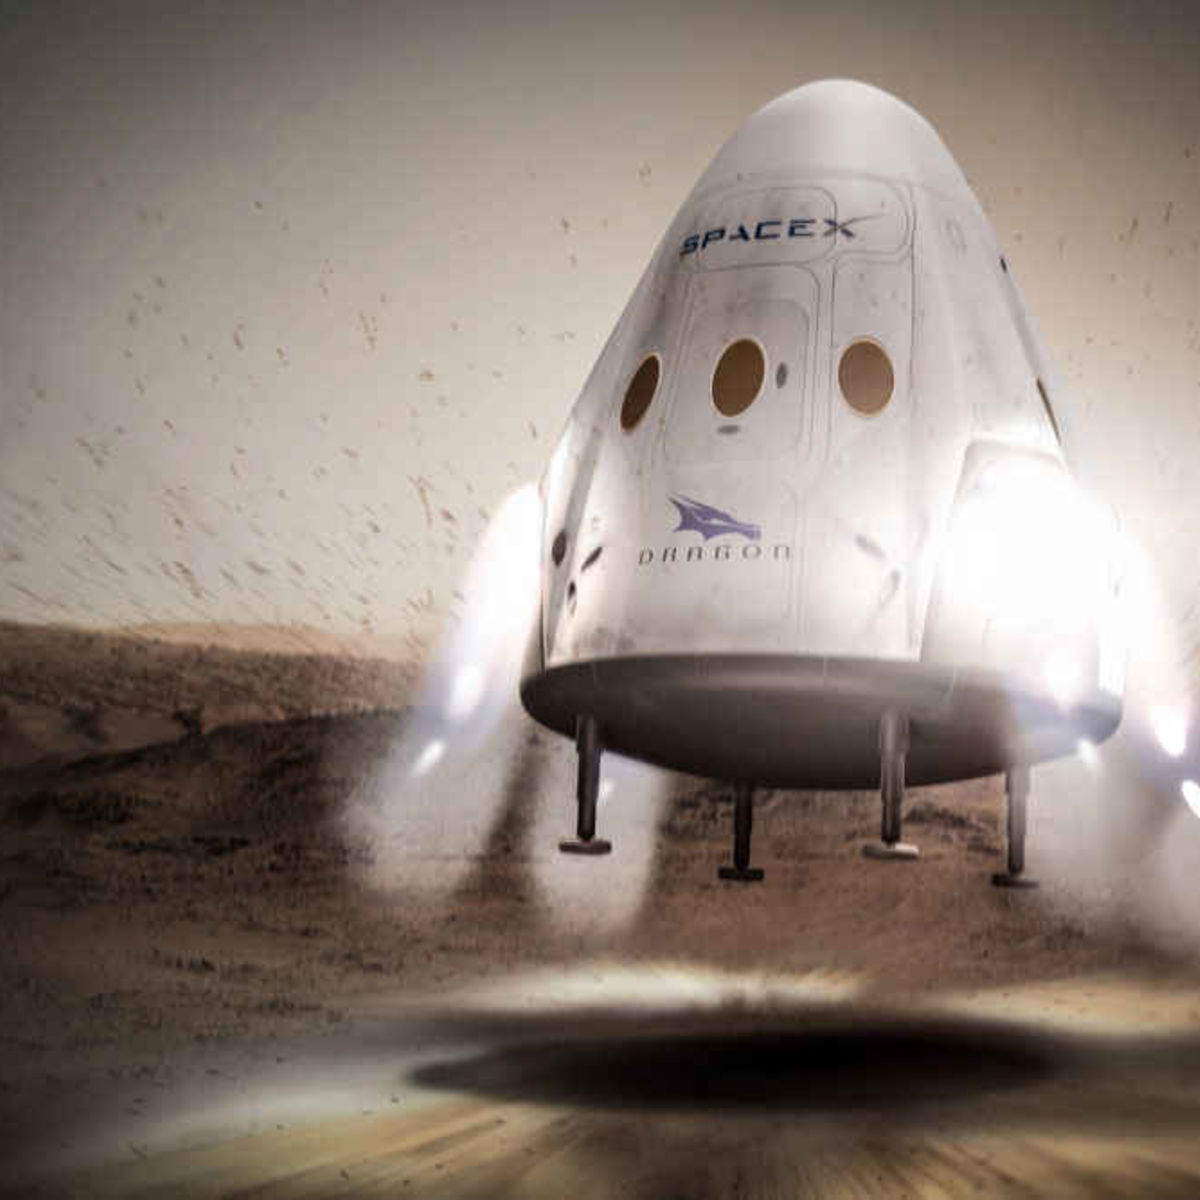 dragon-landing-mars-spacex.jpg